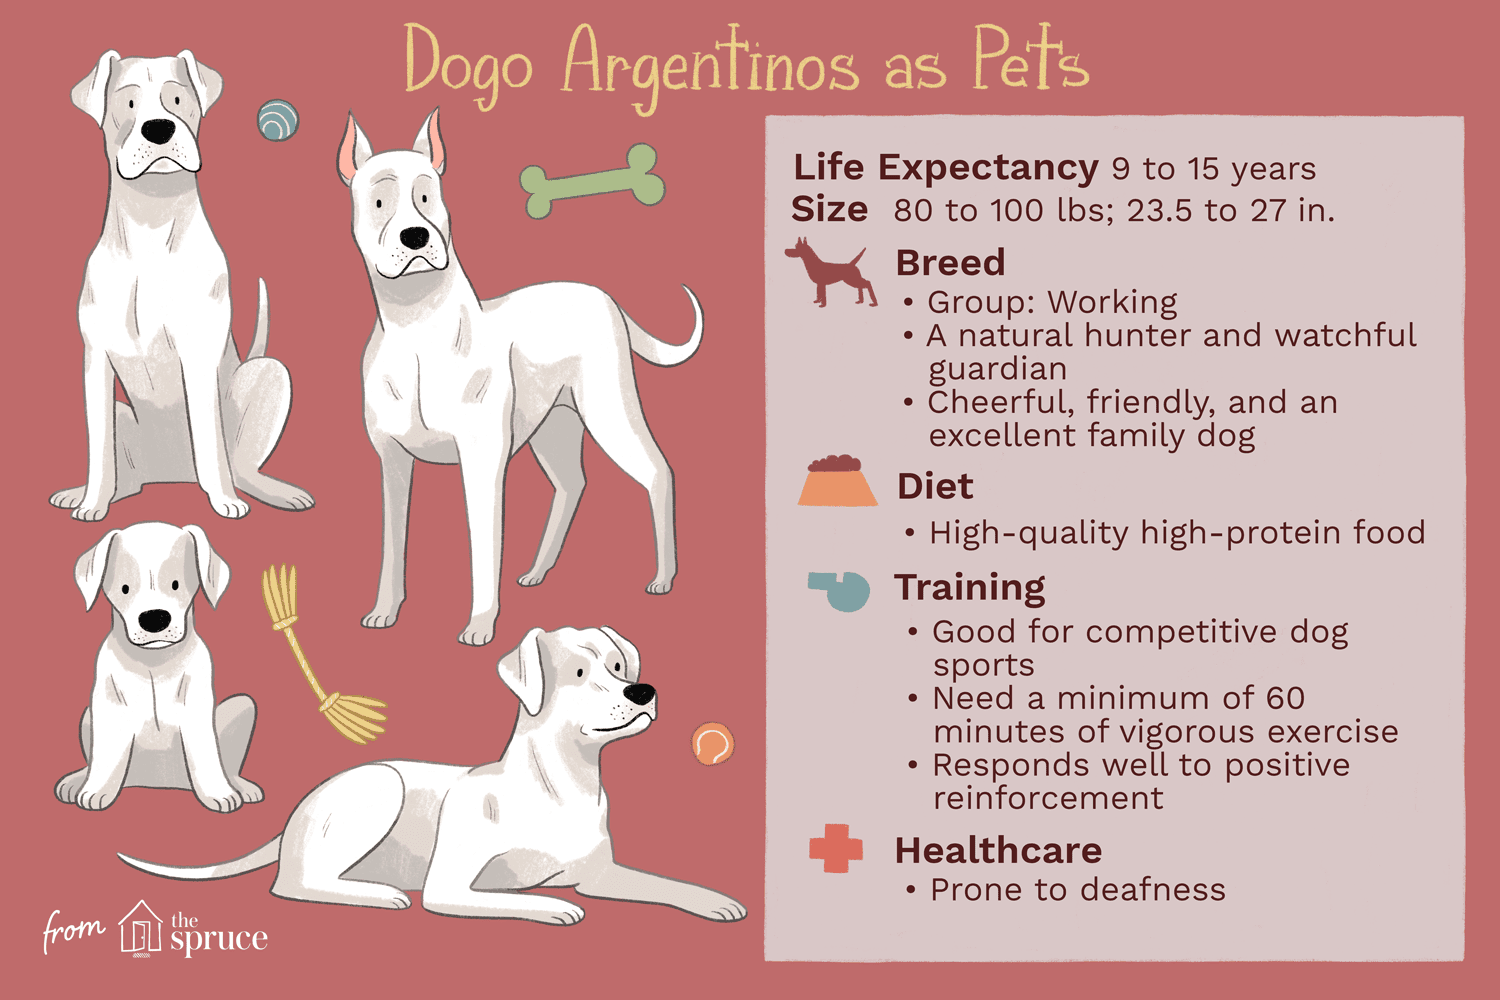 dogo argentinos as pets